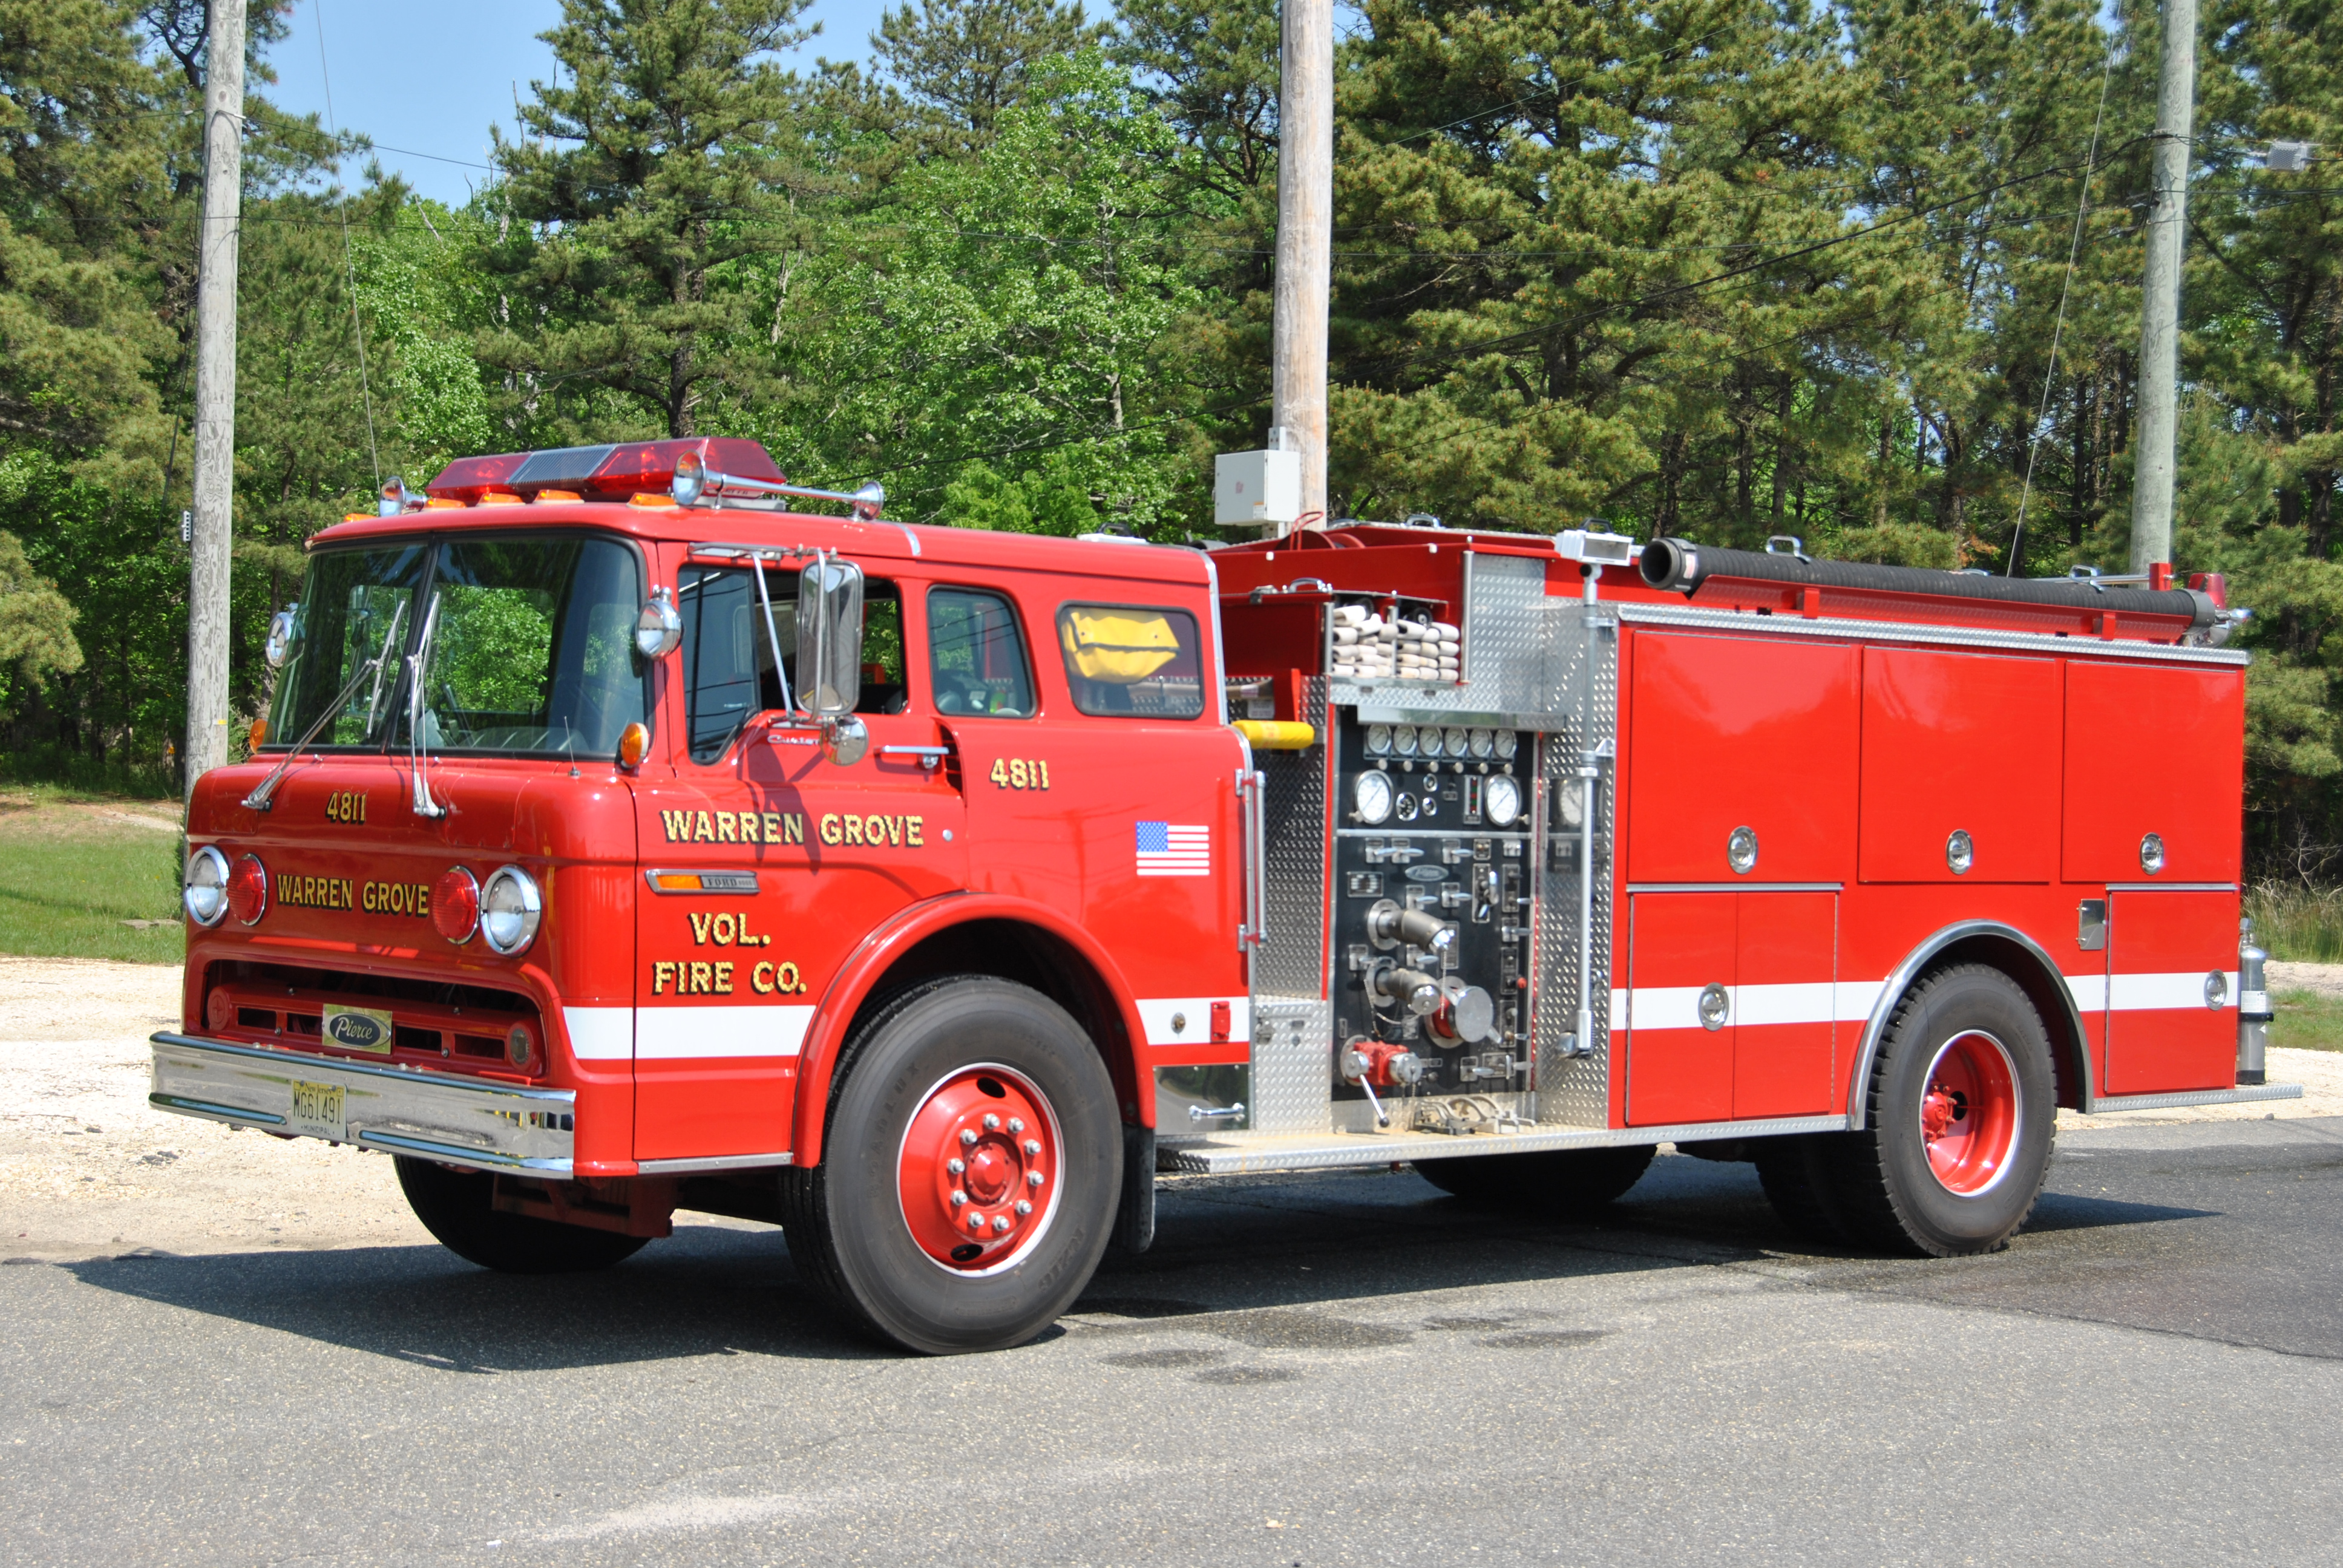 Warren Grove Fire Dept Engine 4811 | Flickr - Photo Sharing!